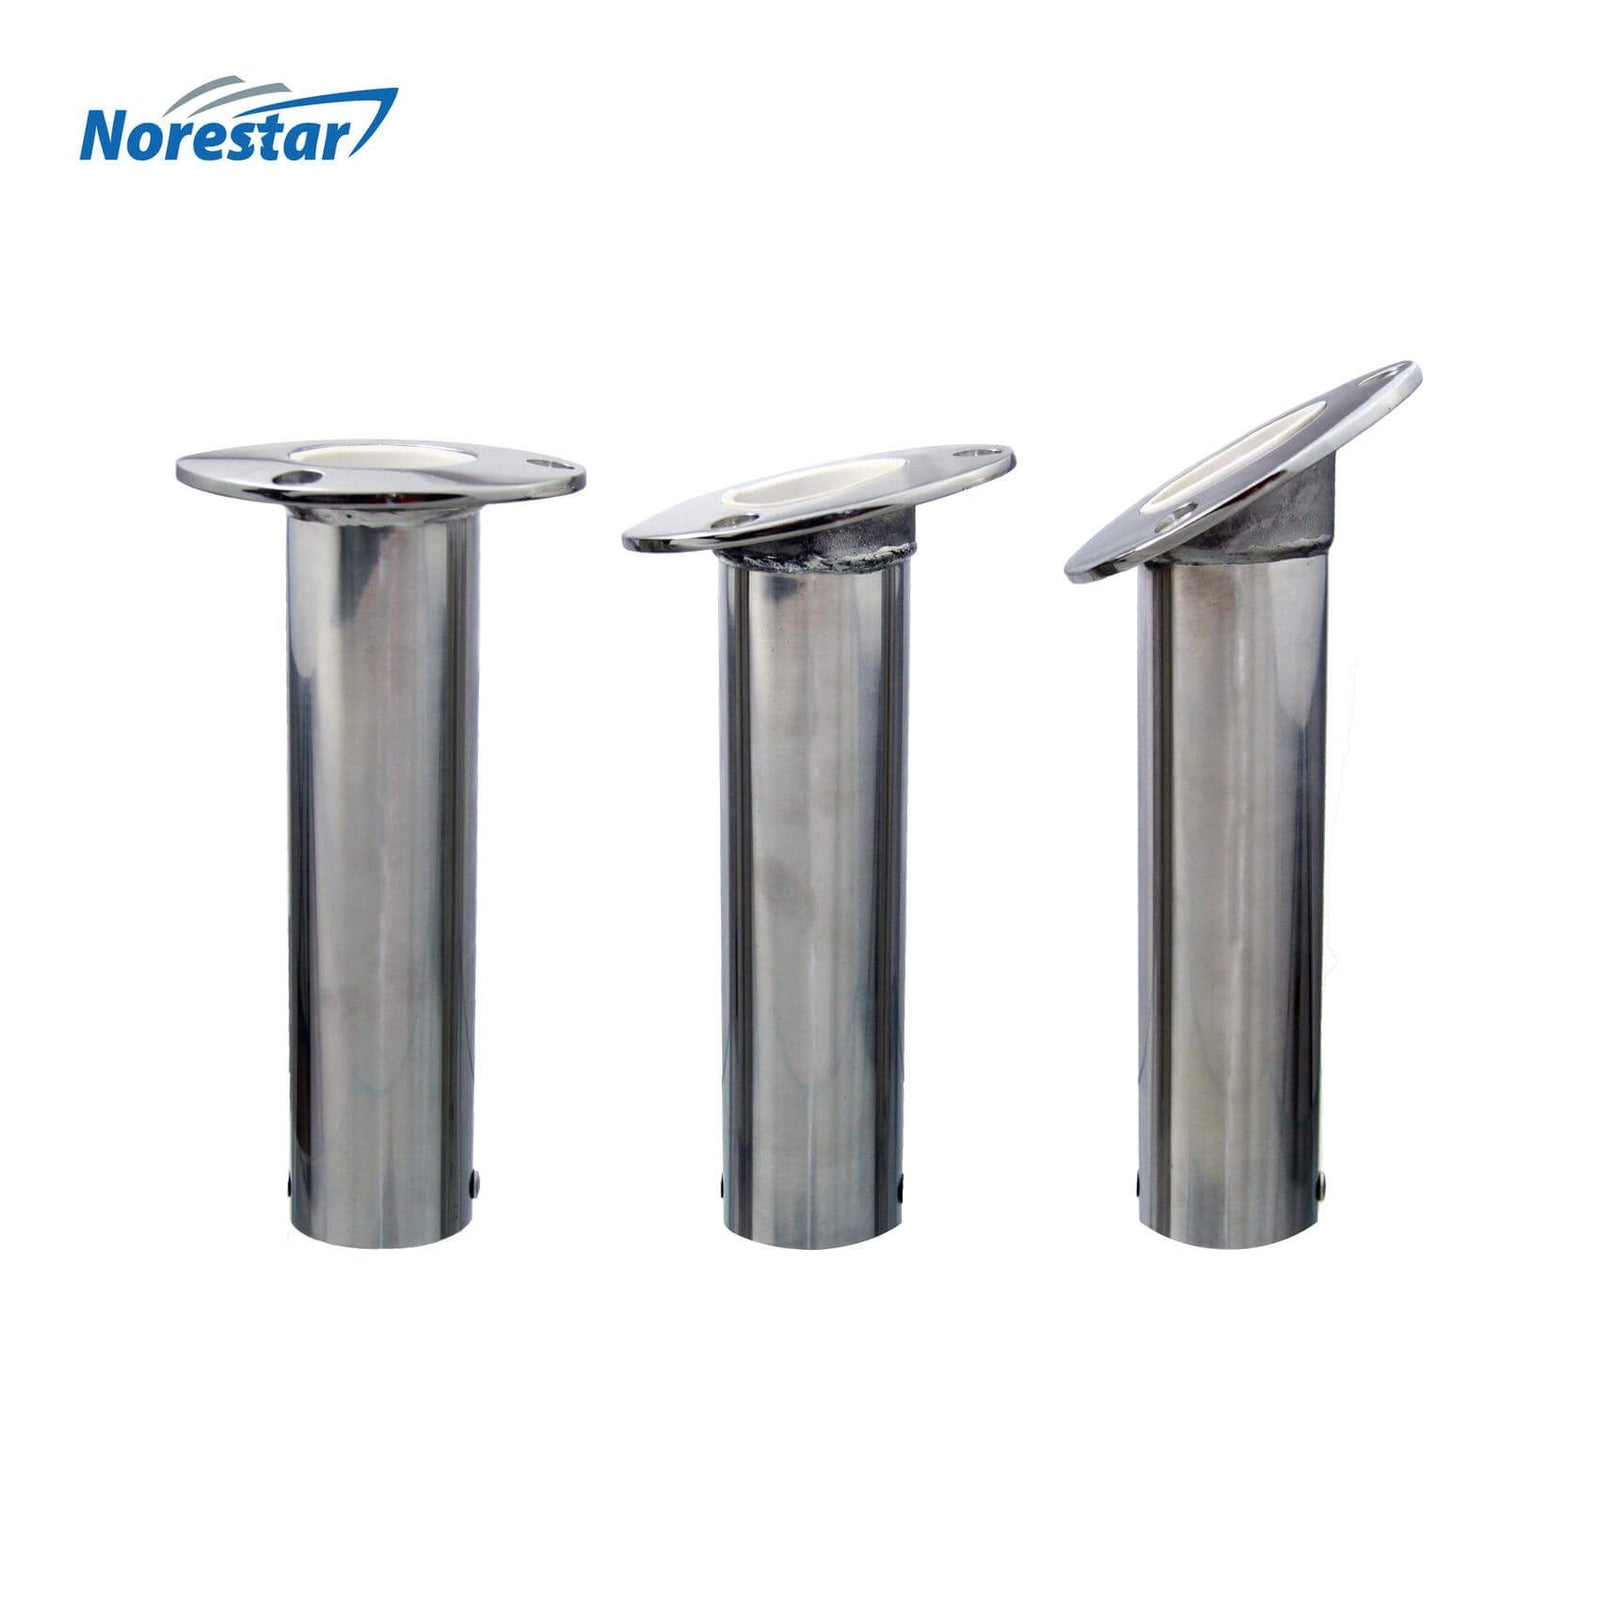 Flush Mounted Stainless Steel Rod Holders, Angle Comparison